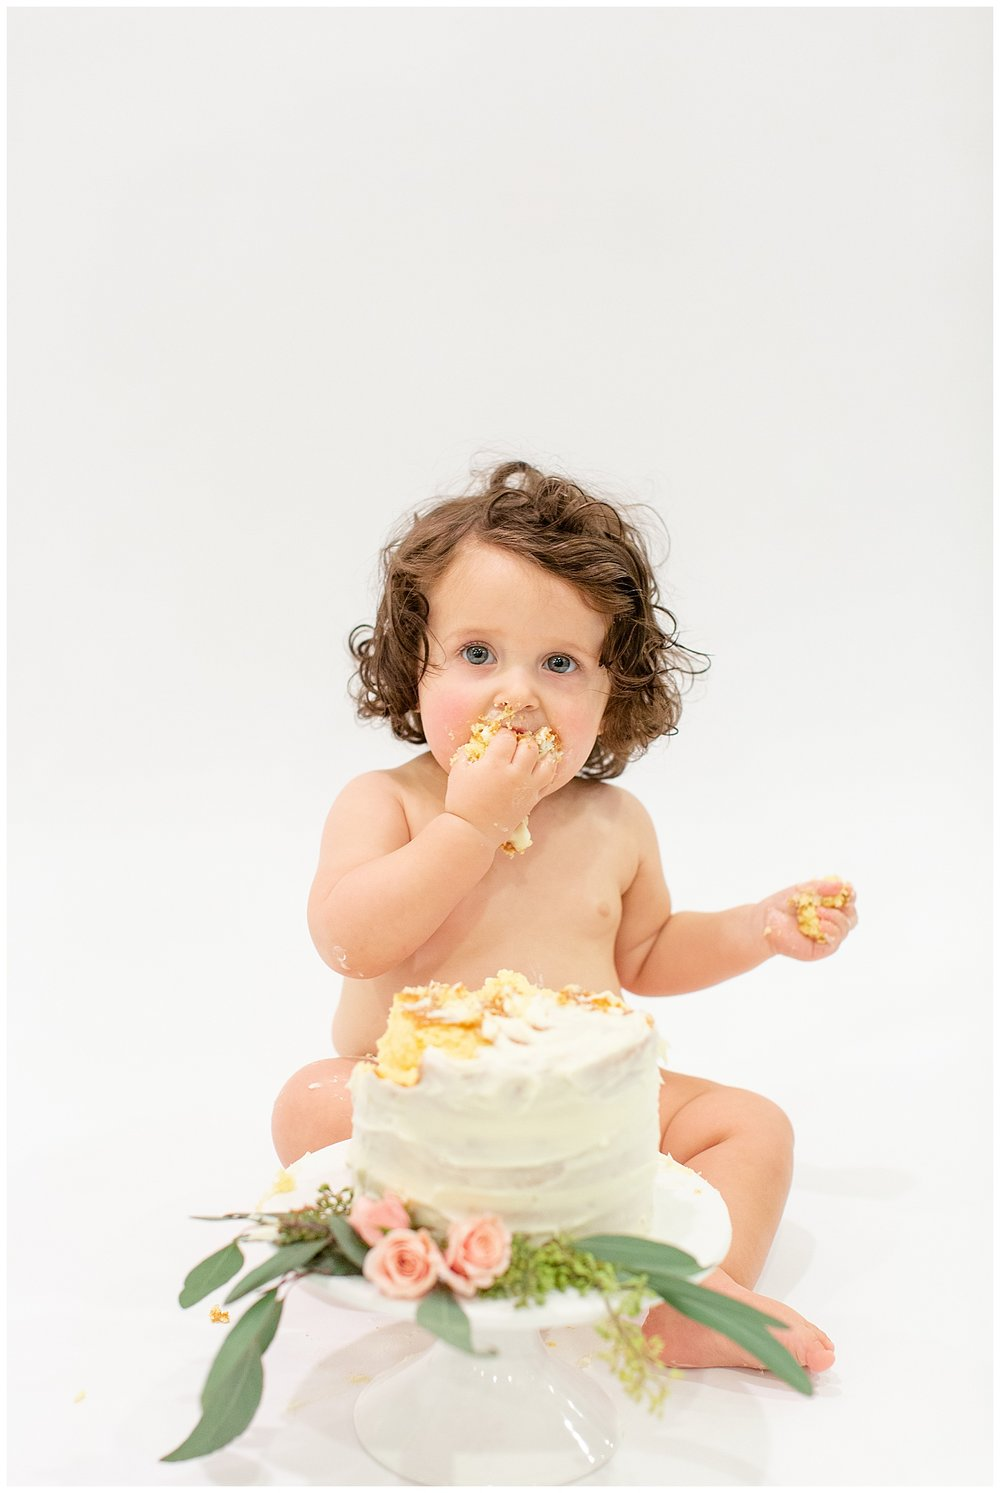 emily-belson-photography-washington-dc-baby-cake-smash-14.jpg